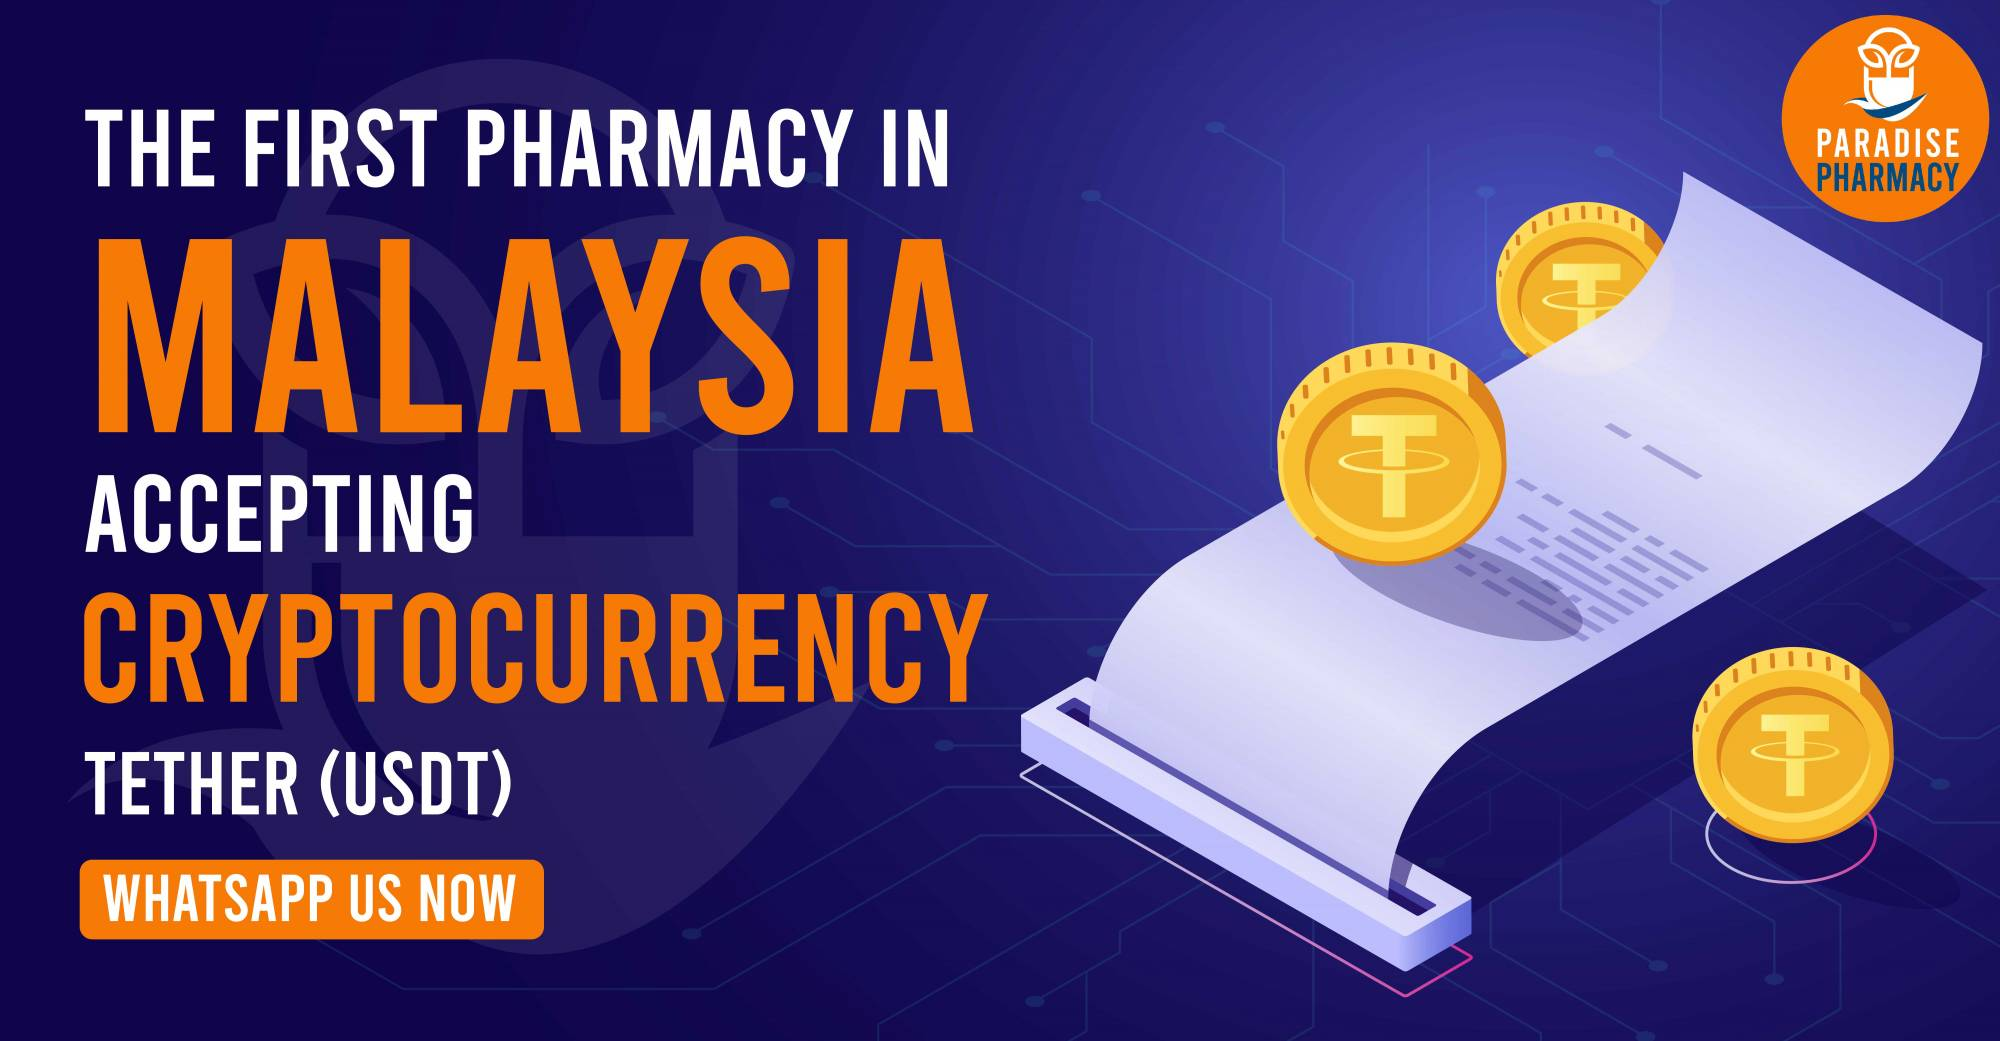 THE FIRST PHARMACY IN MALAYSIA ACCEPTING CRYPTOCURRENCY